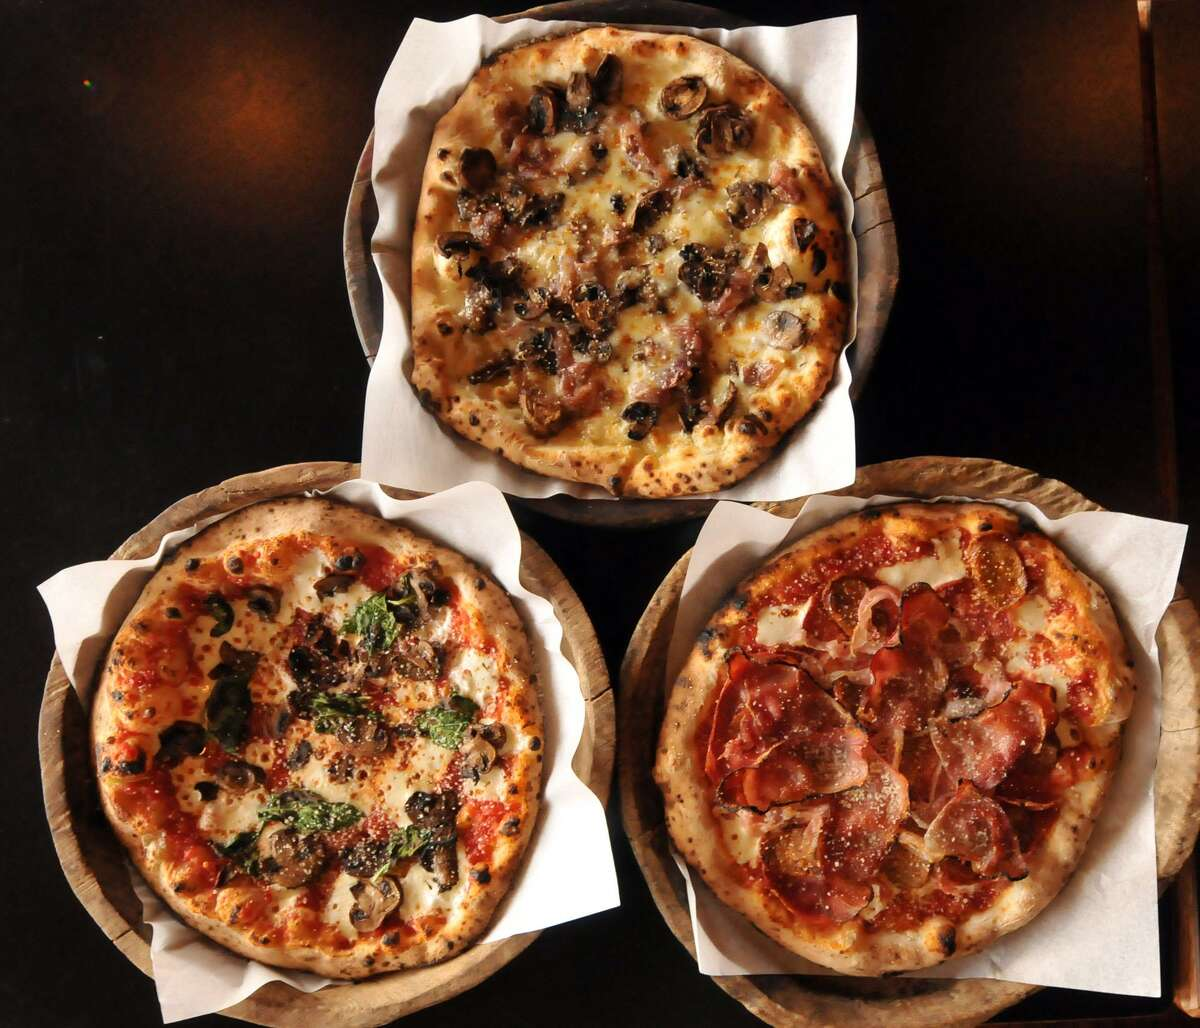 A selection of pies from Dough Pizzeria Napoletana.